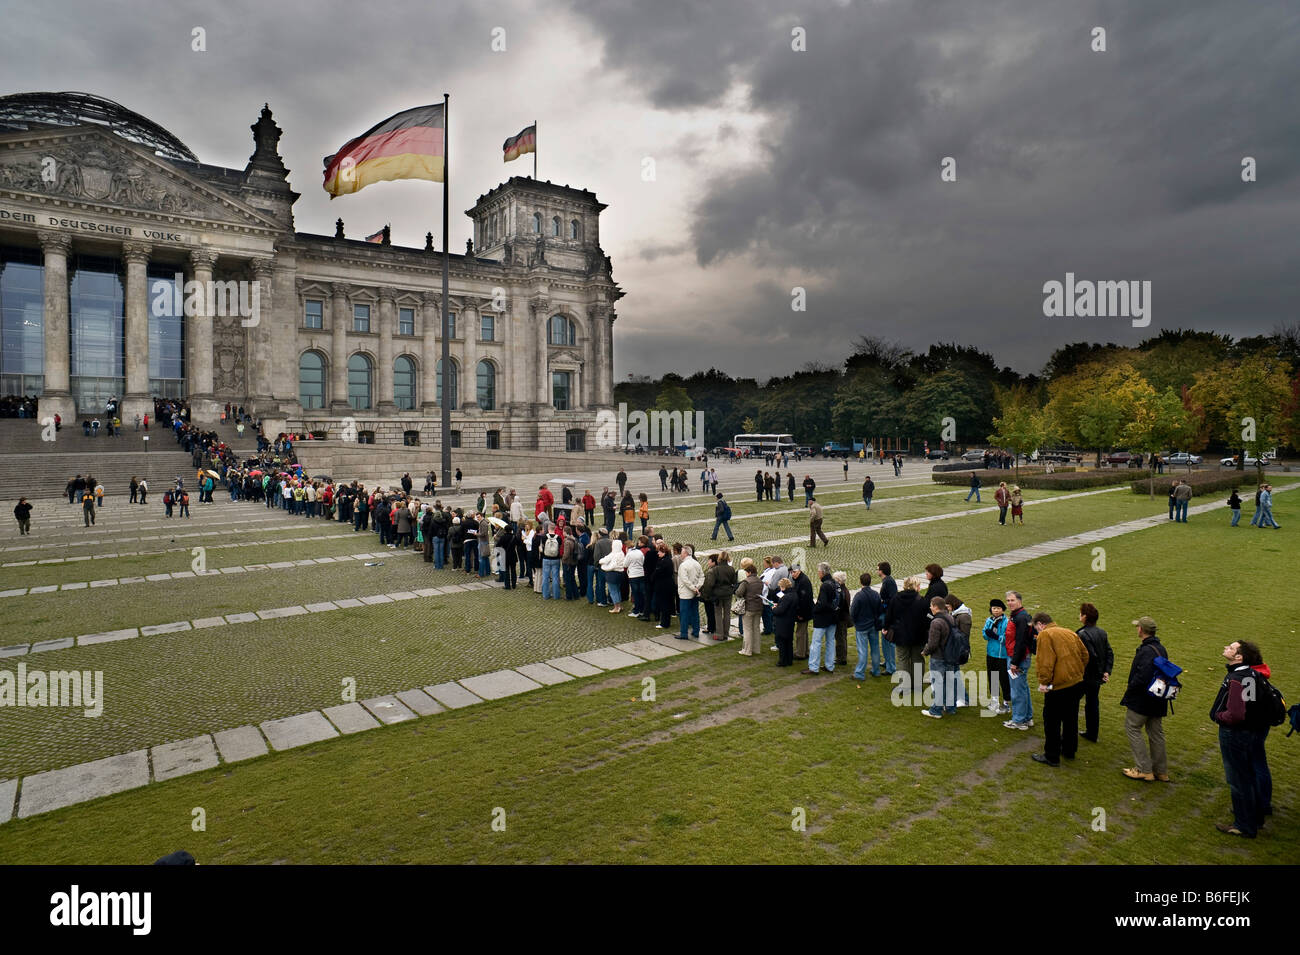 Reichstag building, people waiting in line, Berlin, Germany, Europe - Stock Image